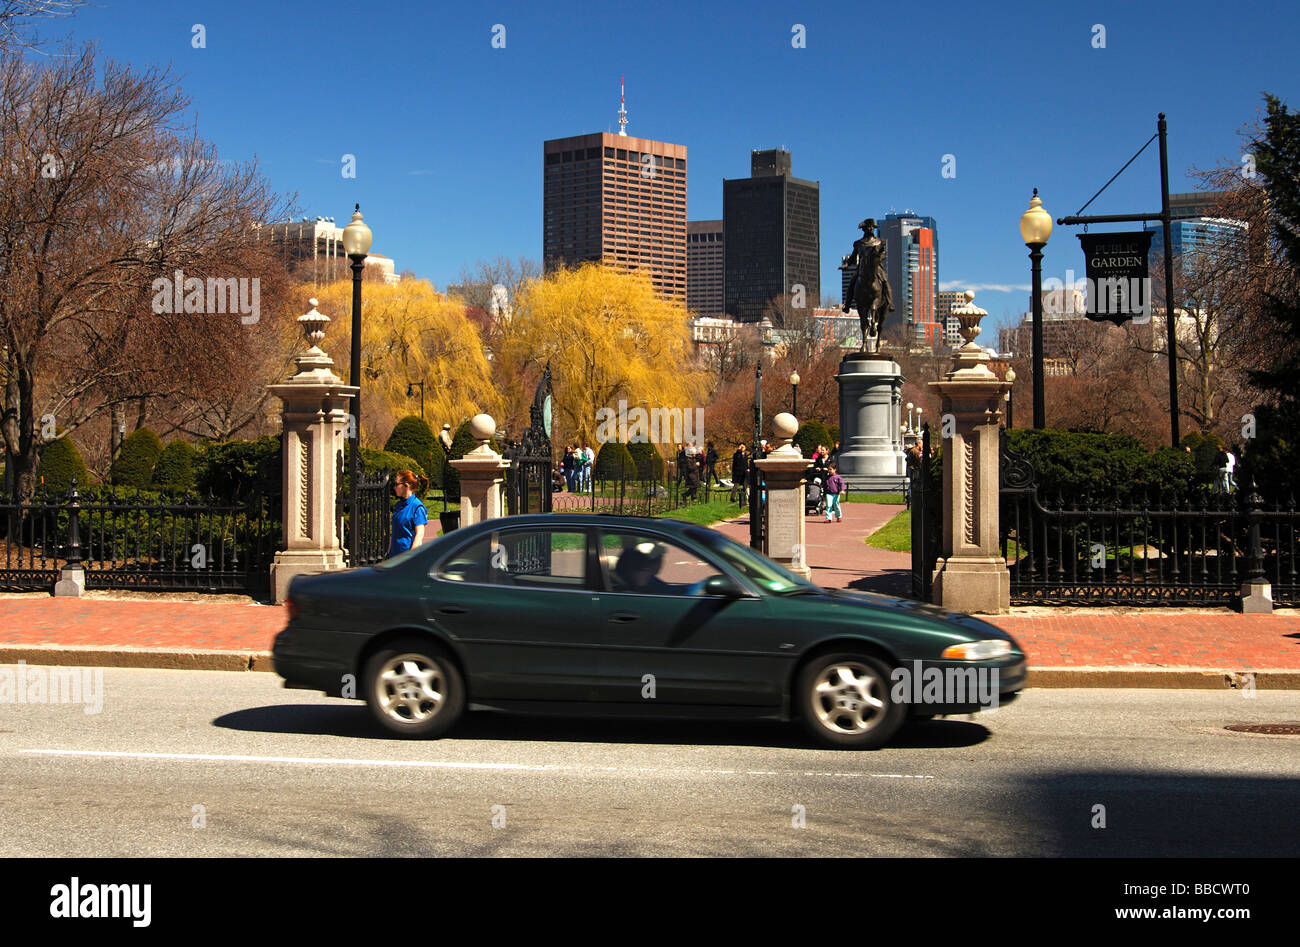 At the the entrance to the Public Garden of Bosten, skyline of the financial center in the back, Boston, Massachusetts, - Stock Image